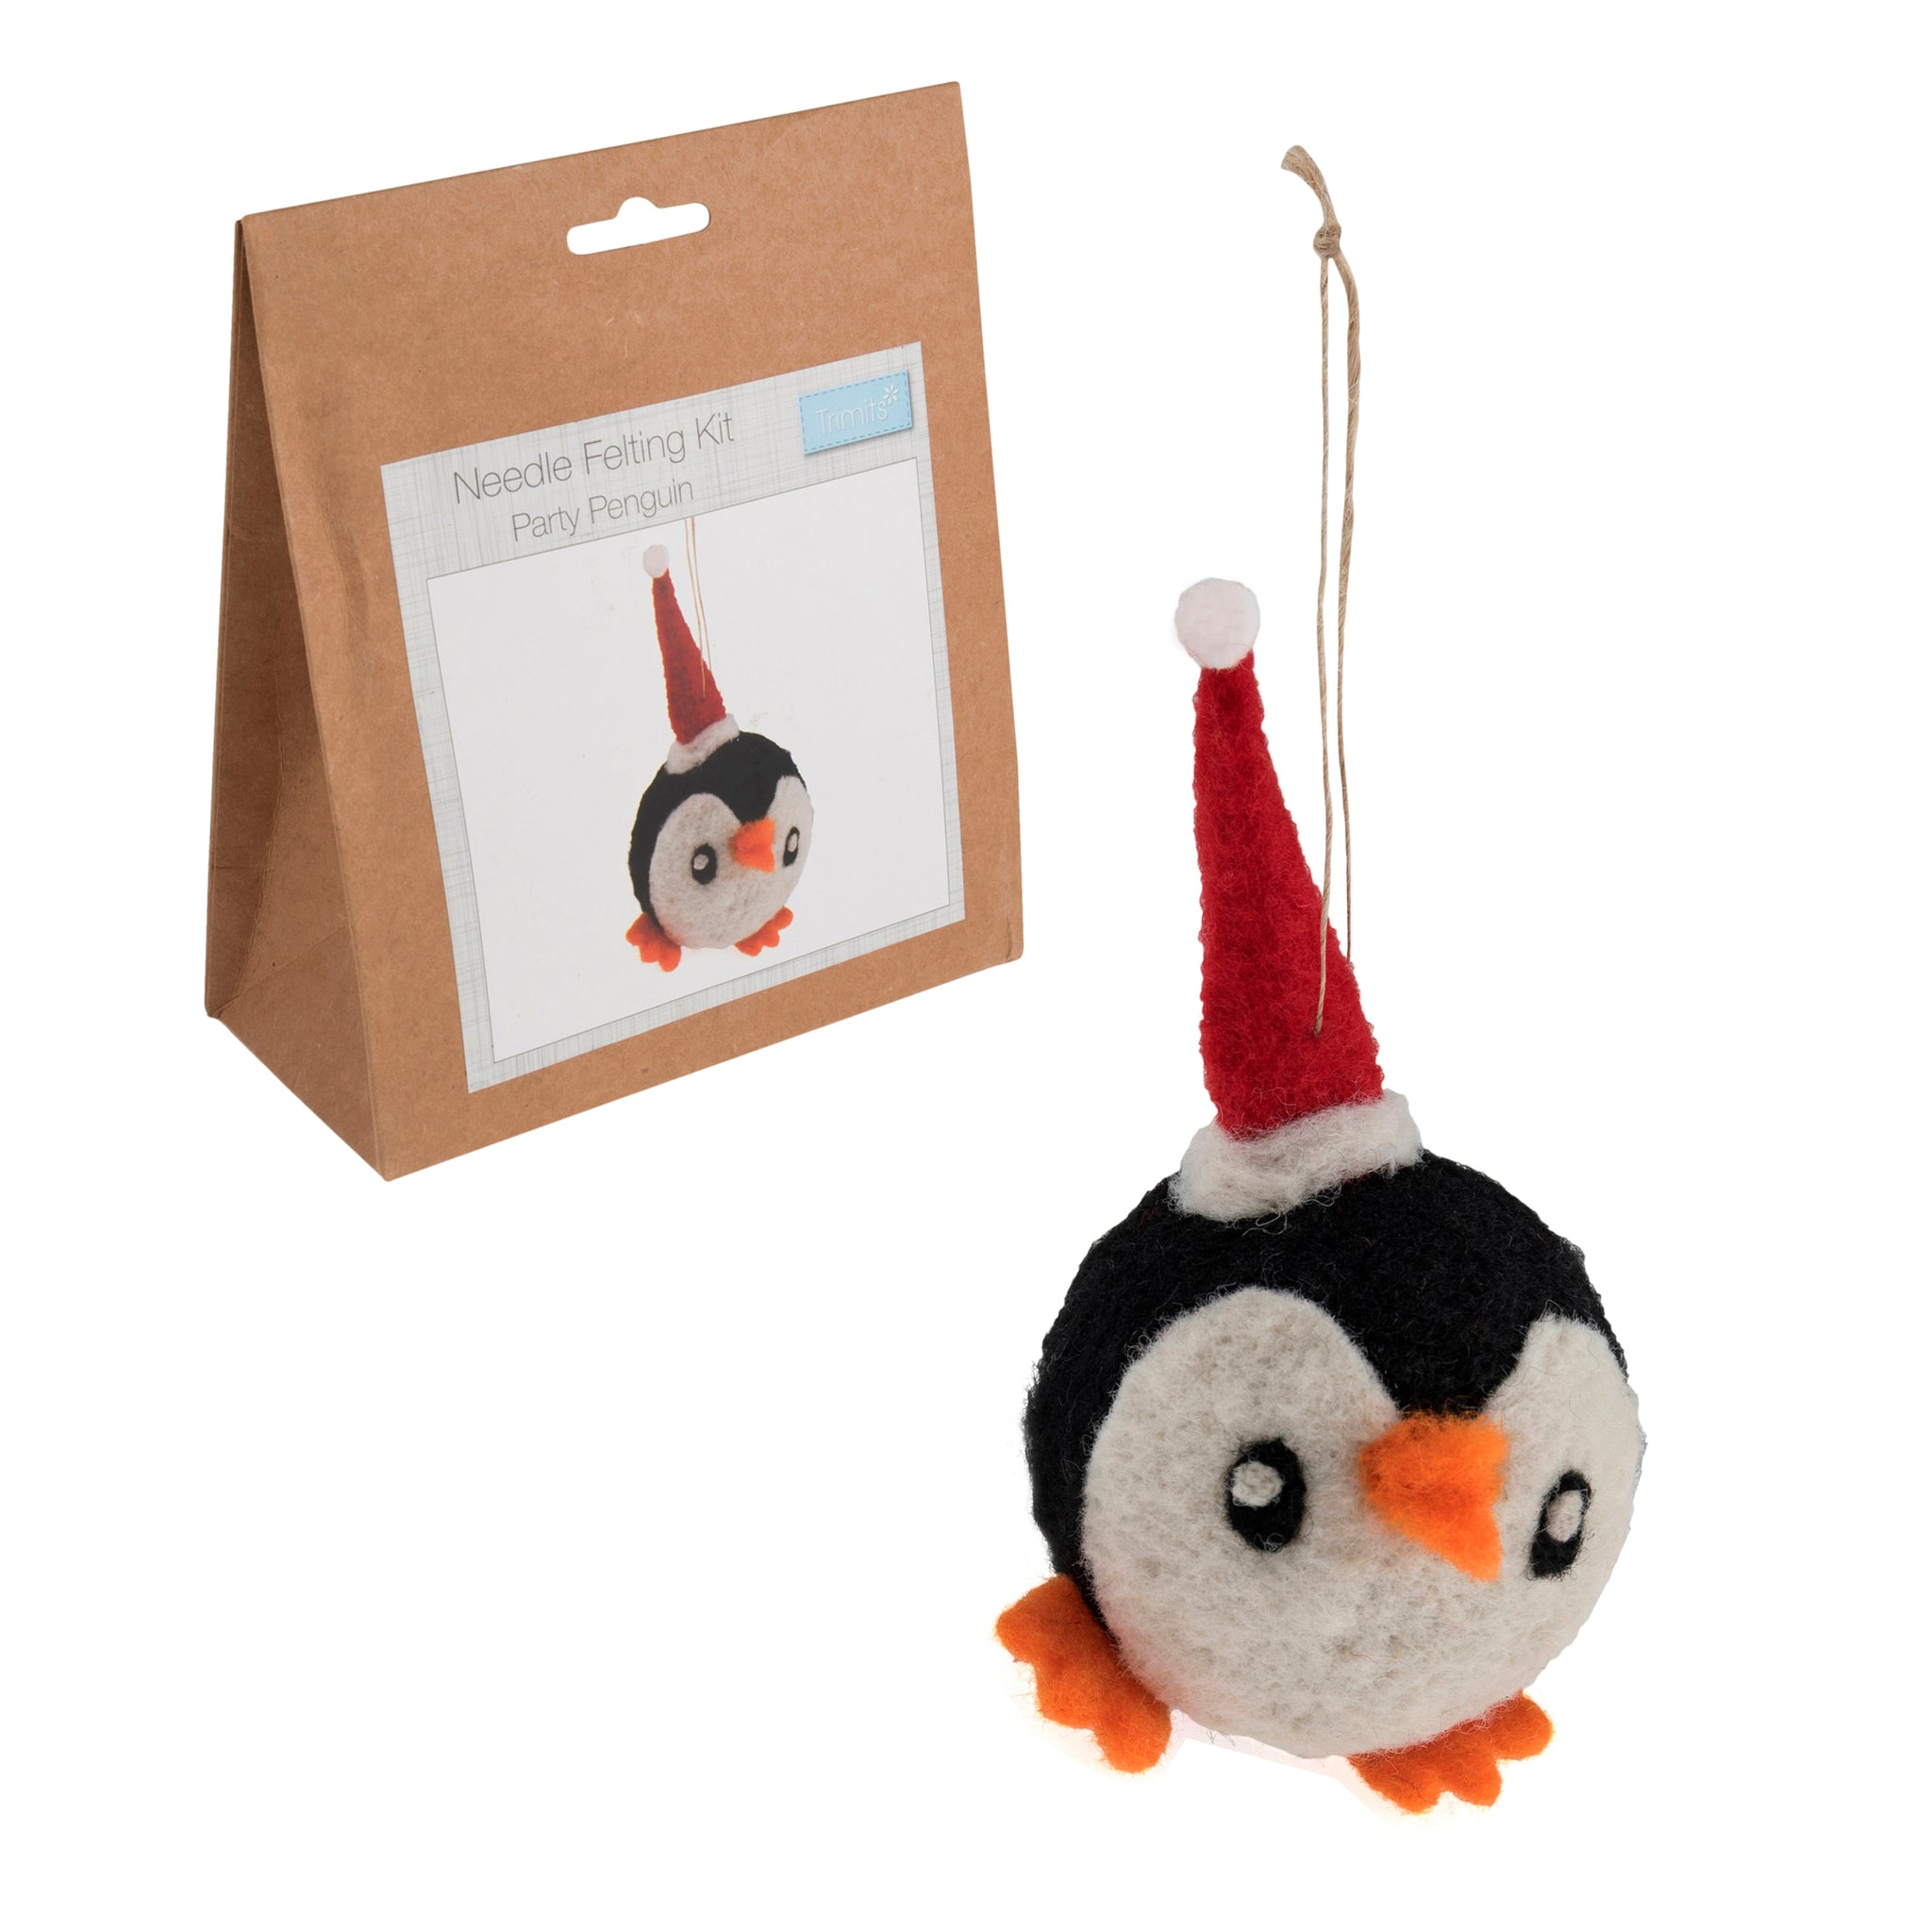 Needle Felting Party Penguin Kit, Make Your Own Penguin, TCK007 - Fabric and Ribbon